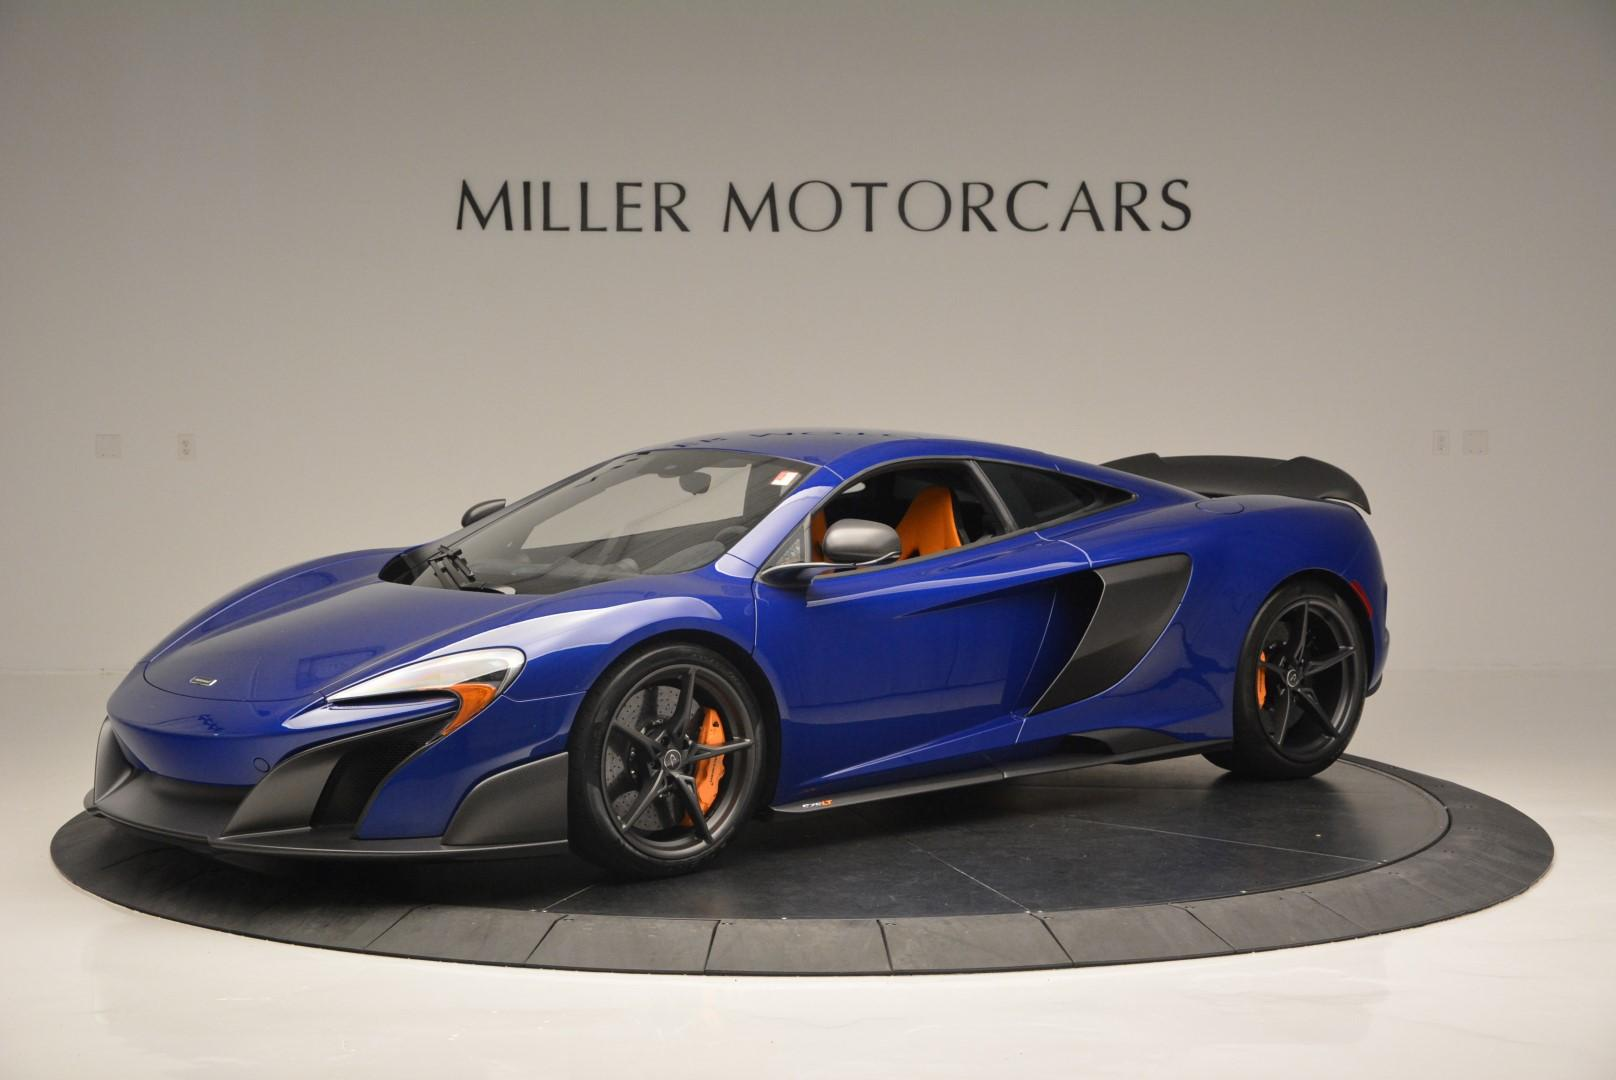 Used 2016 McLaren 675LT Coupe for sale $235,900 at Aston Martin of Greenwich in Greenwich CT 06830 1